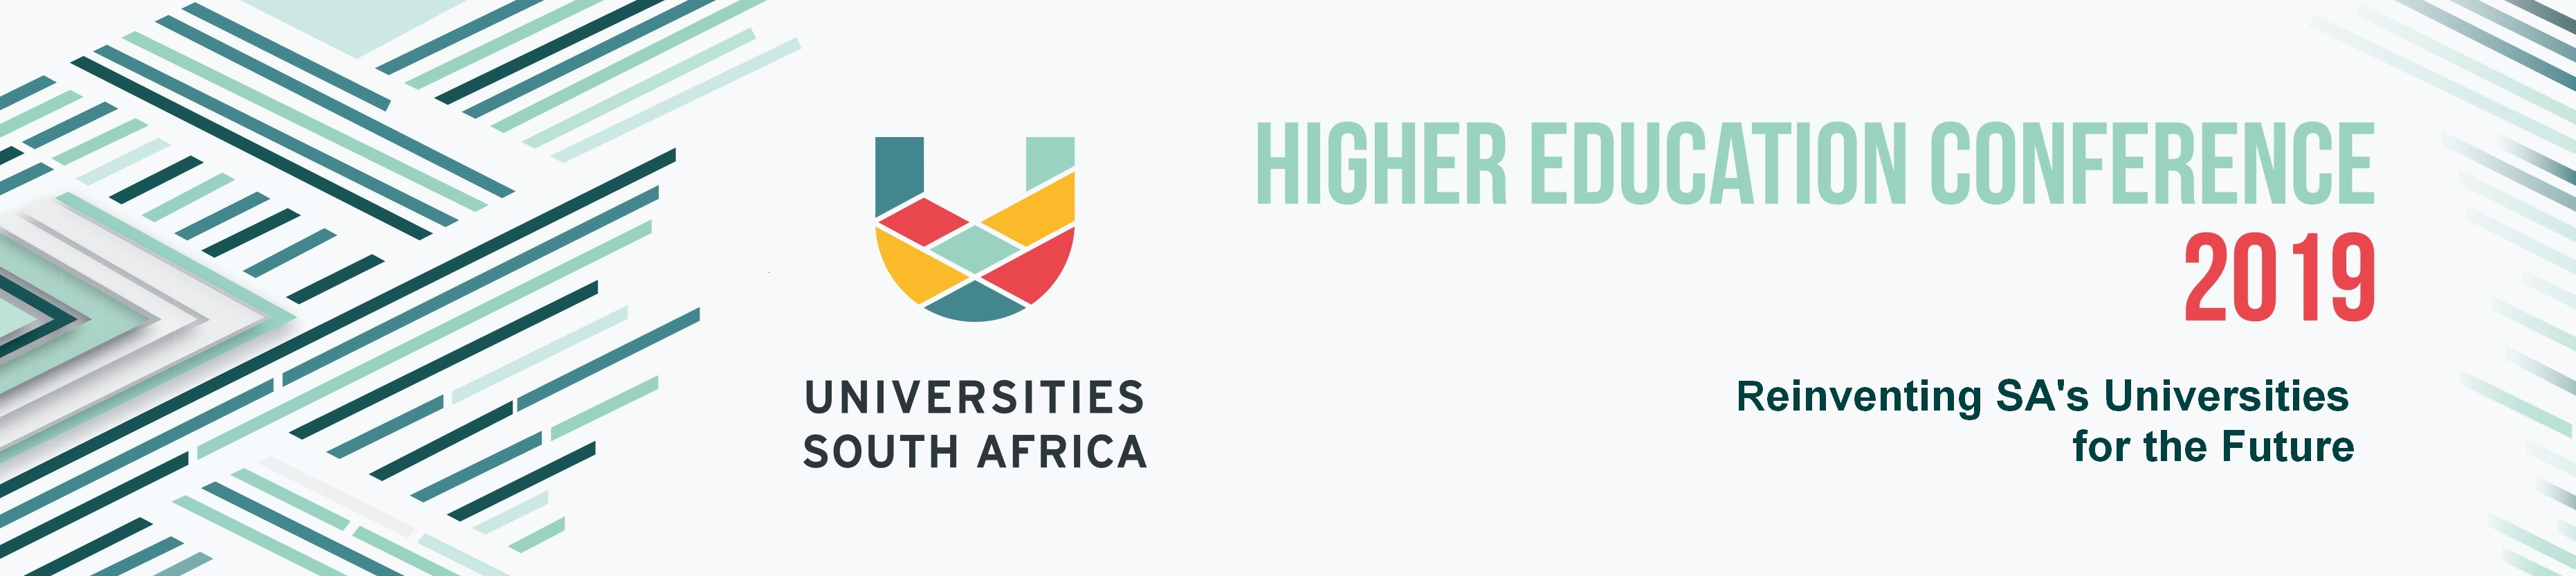 NATIONAL HIGHER EDUCATION CONFERENCE, 2-4 OCTOBER 2019